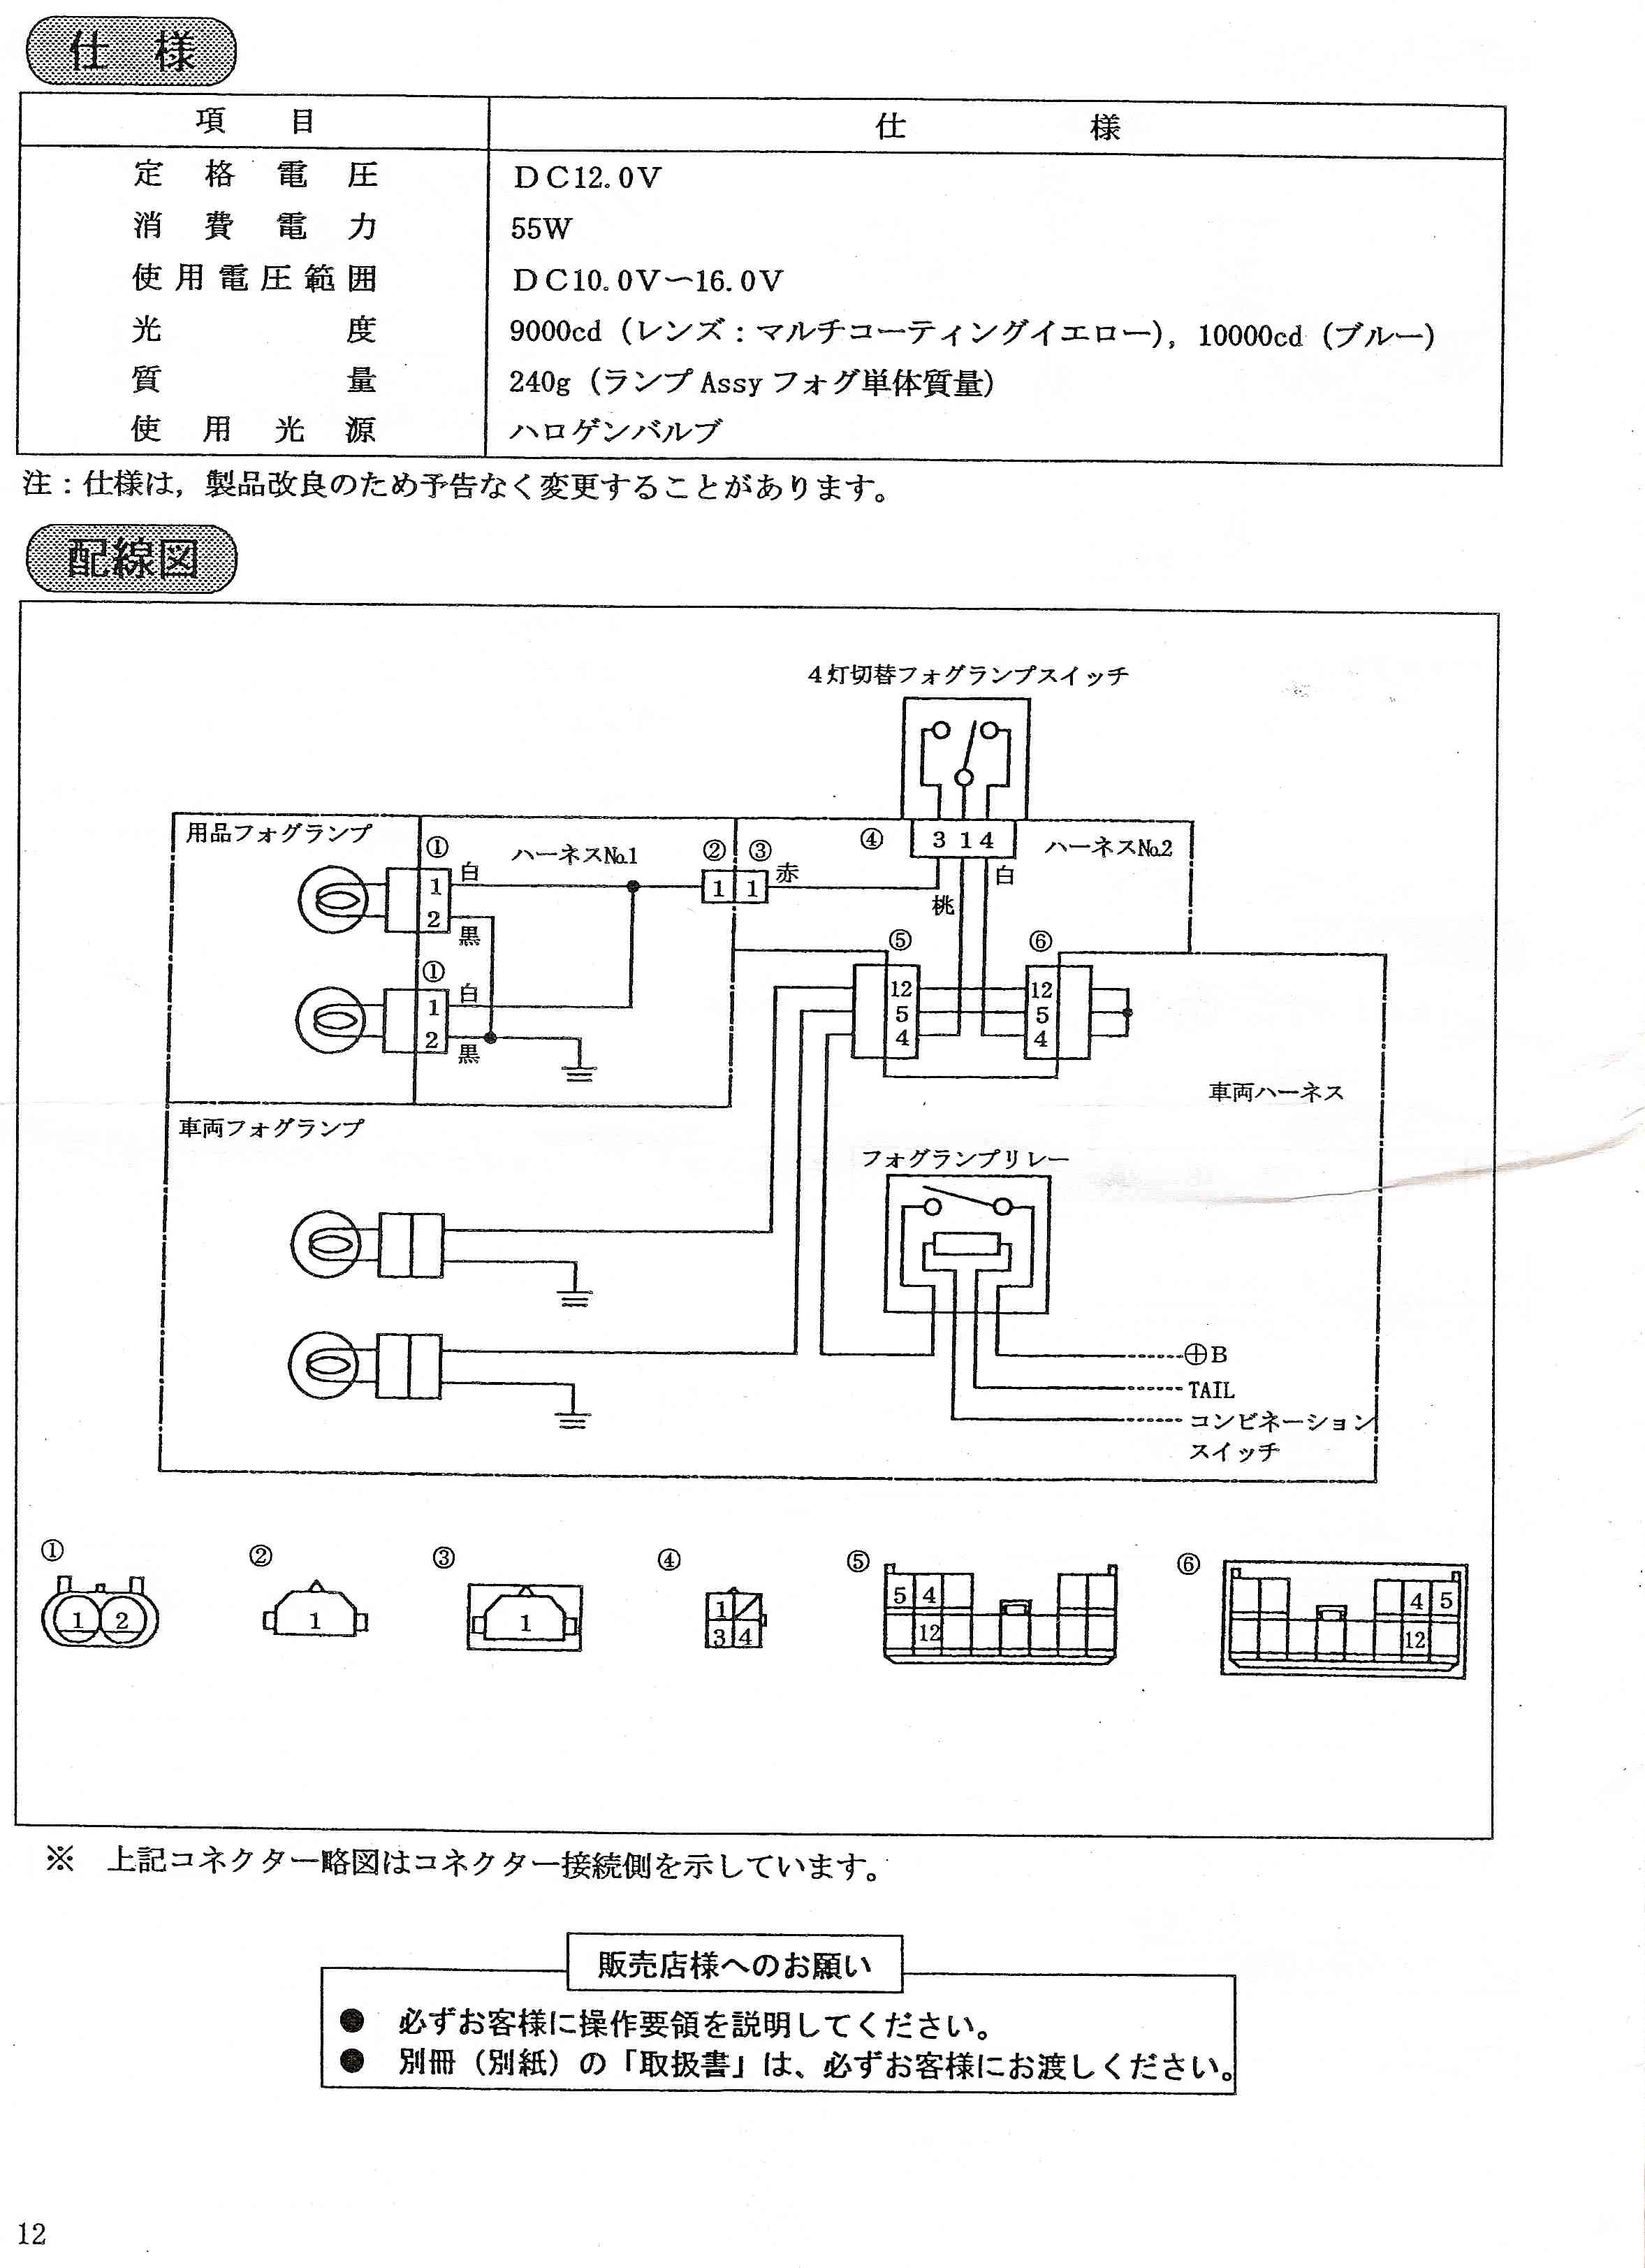 kenwood dnx5140 wiring diagram kenwood dnx5140 wiring diagram kenwood dnx5140 wiring diagram kenwood kvt 514 wiring diagram images